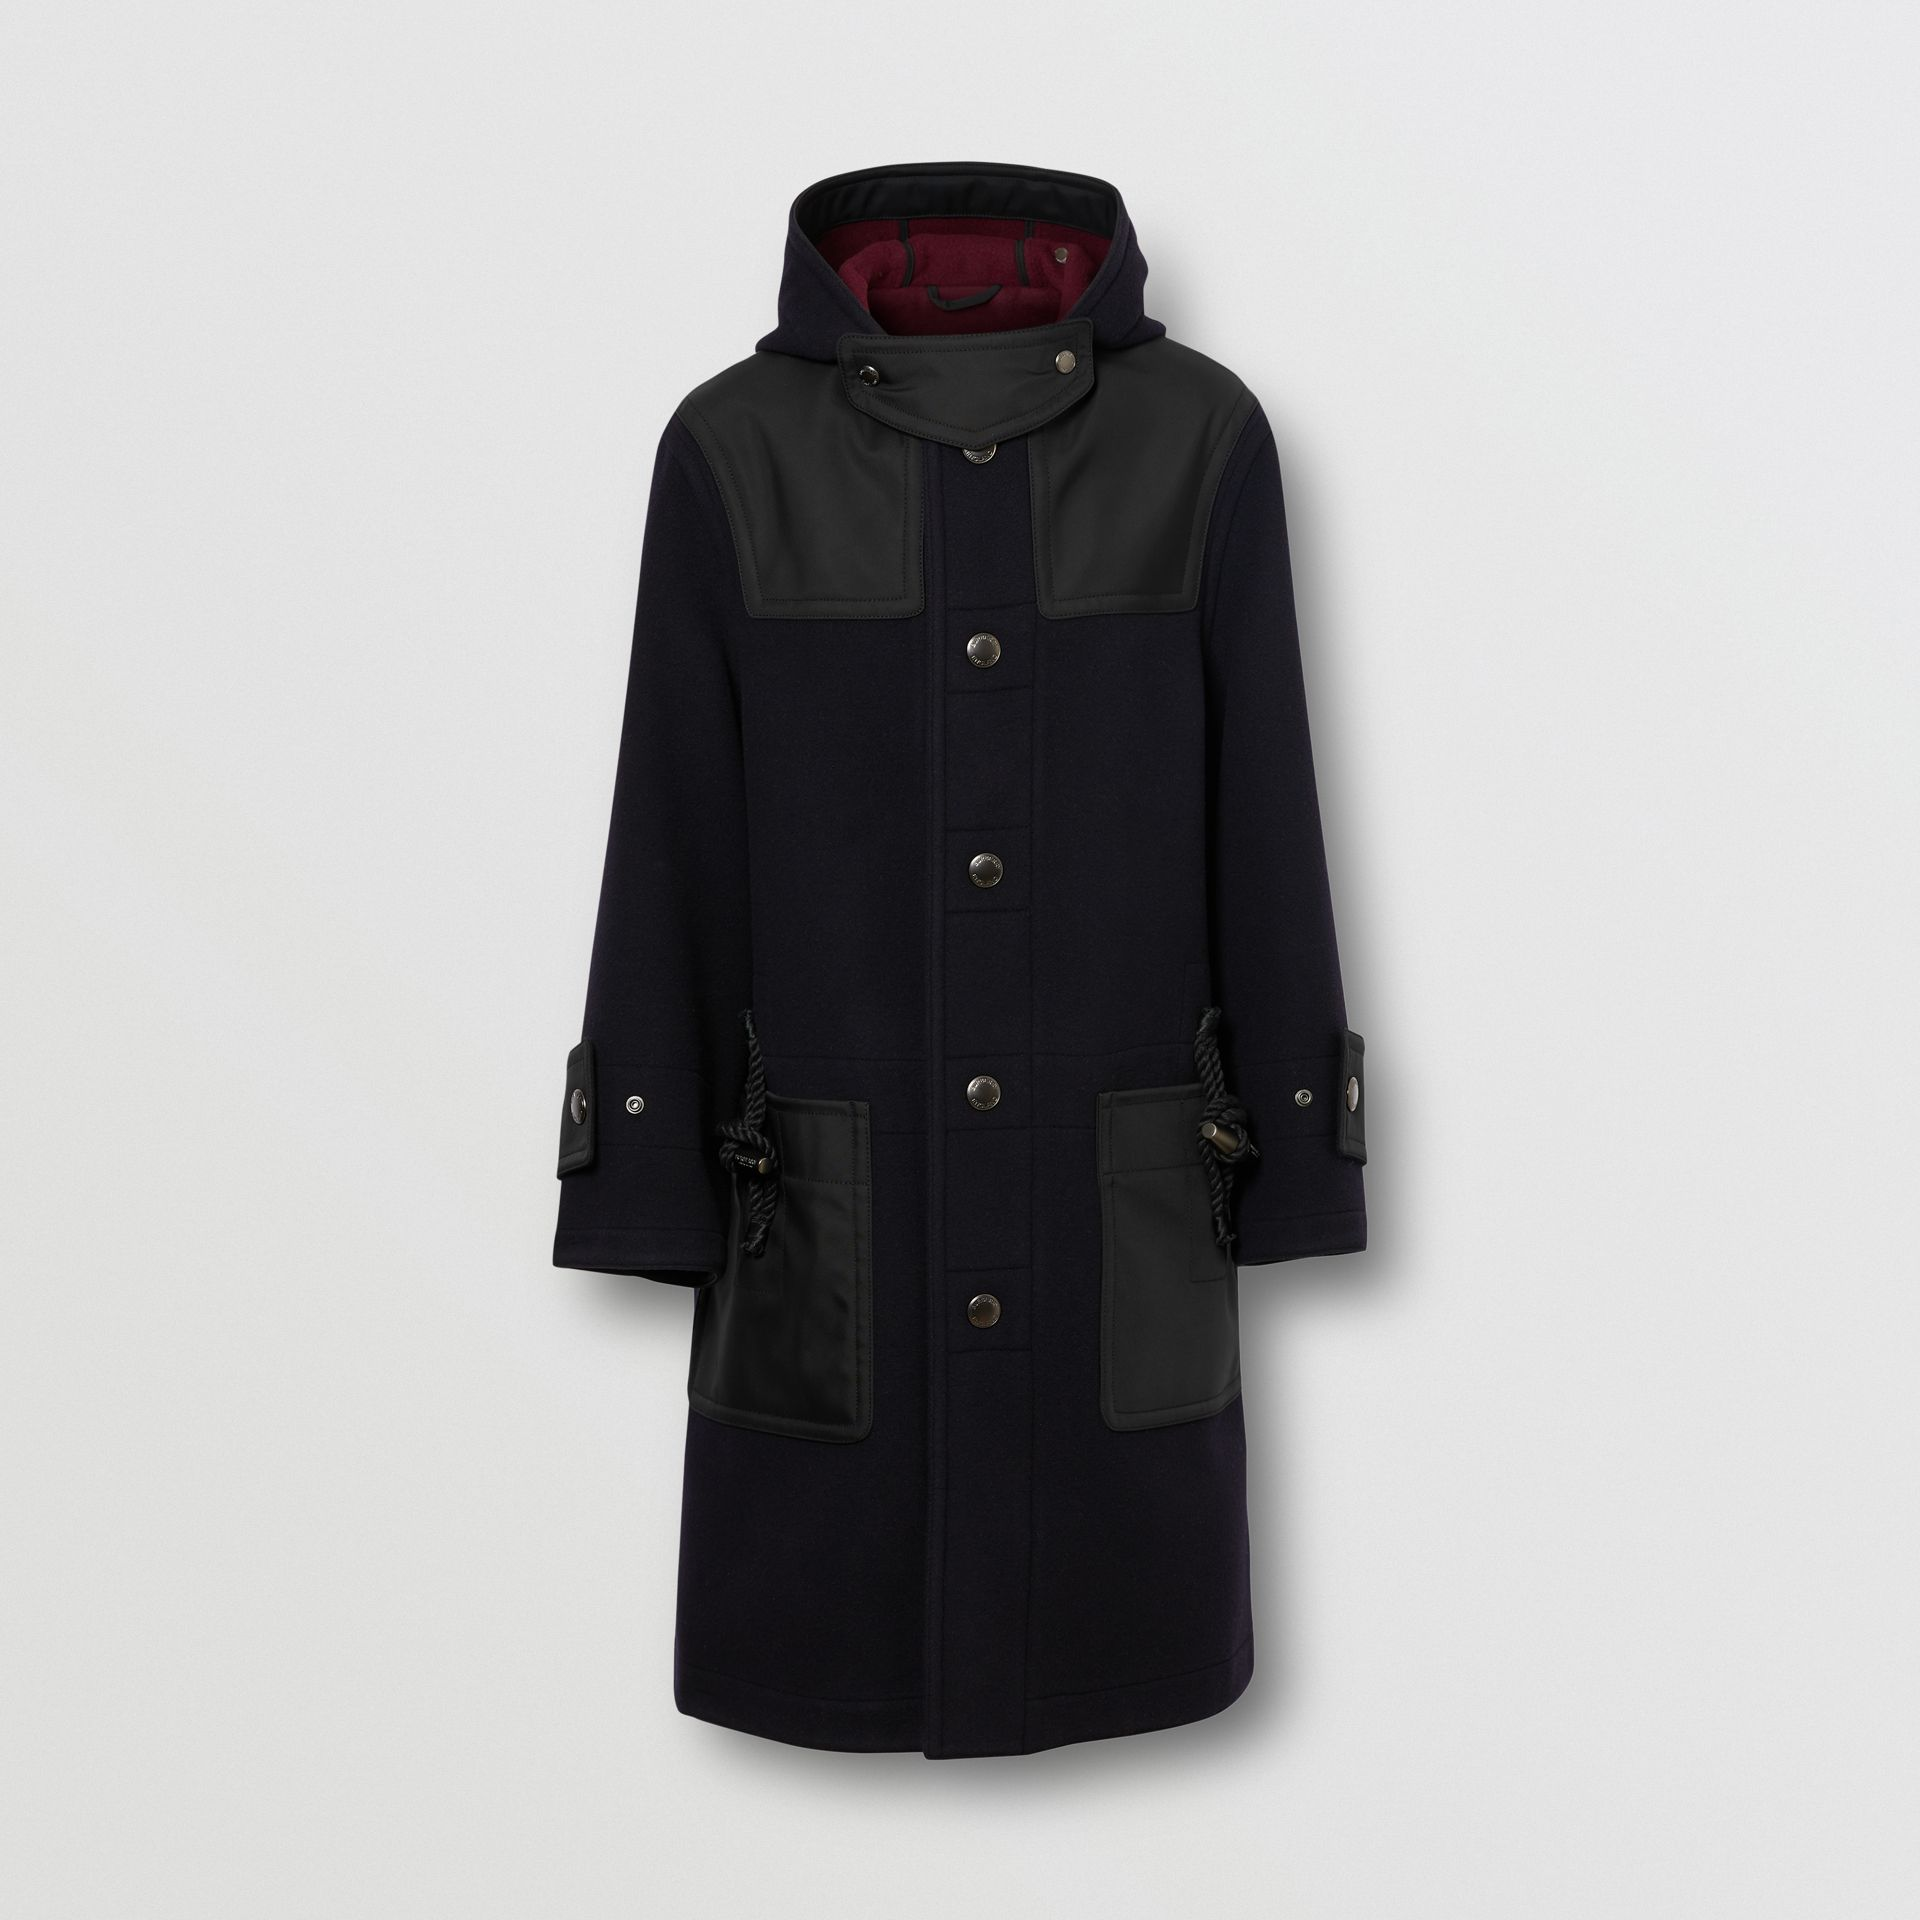 Double-faced Wool Blend Duffle Coat in Navy/burgundy - Men | Burberry - gallery image 3